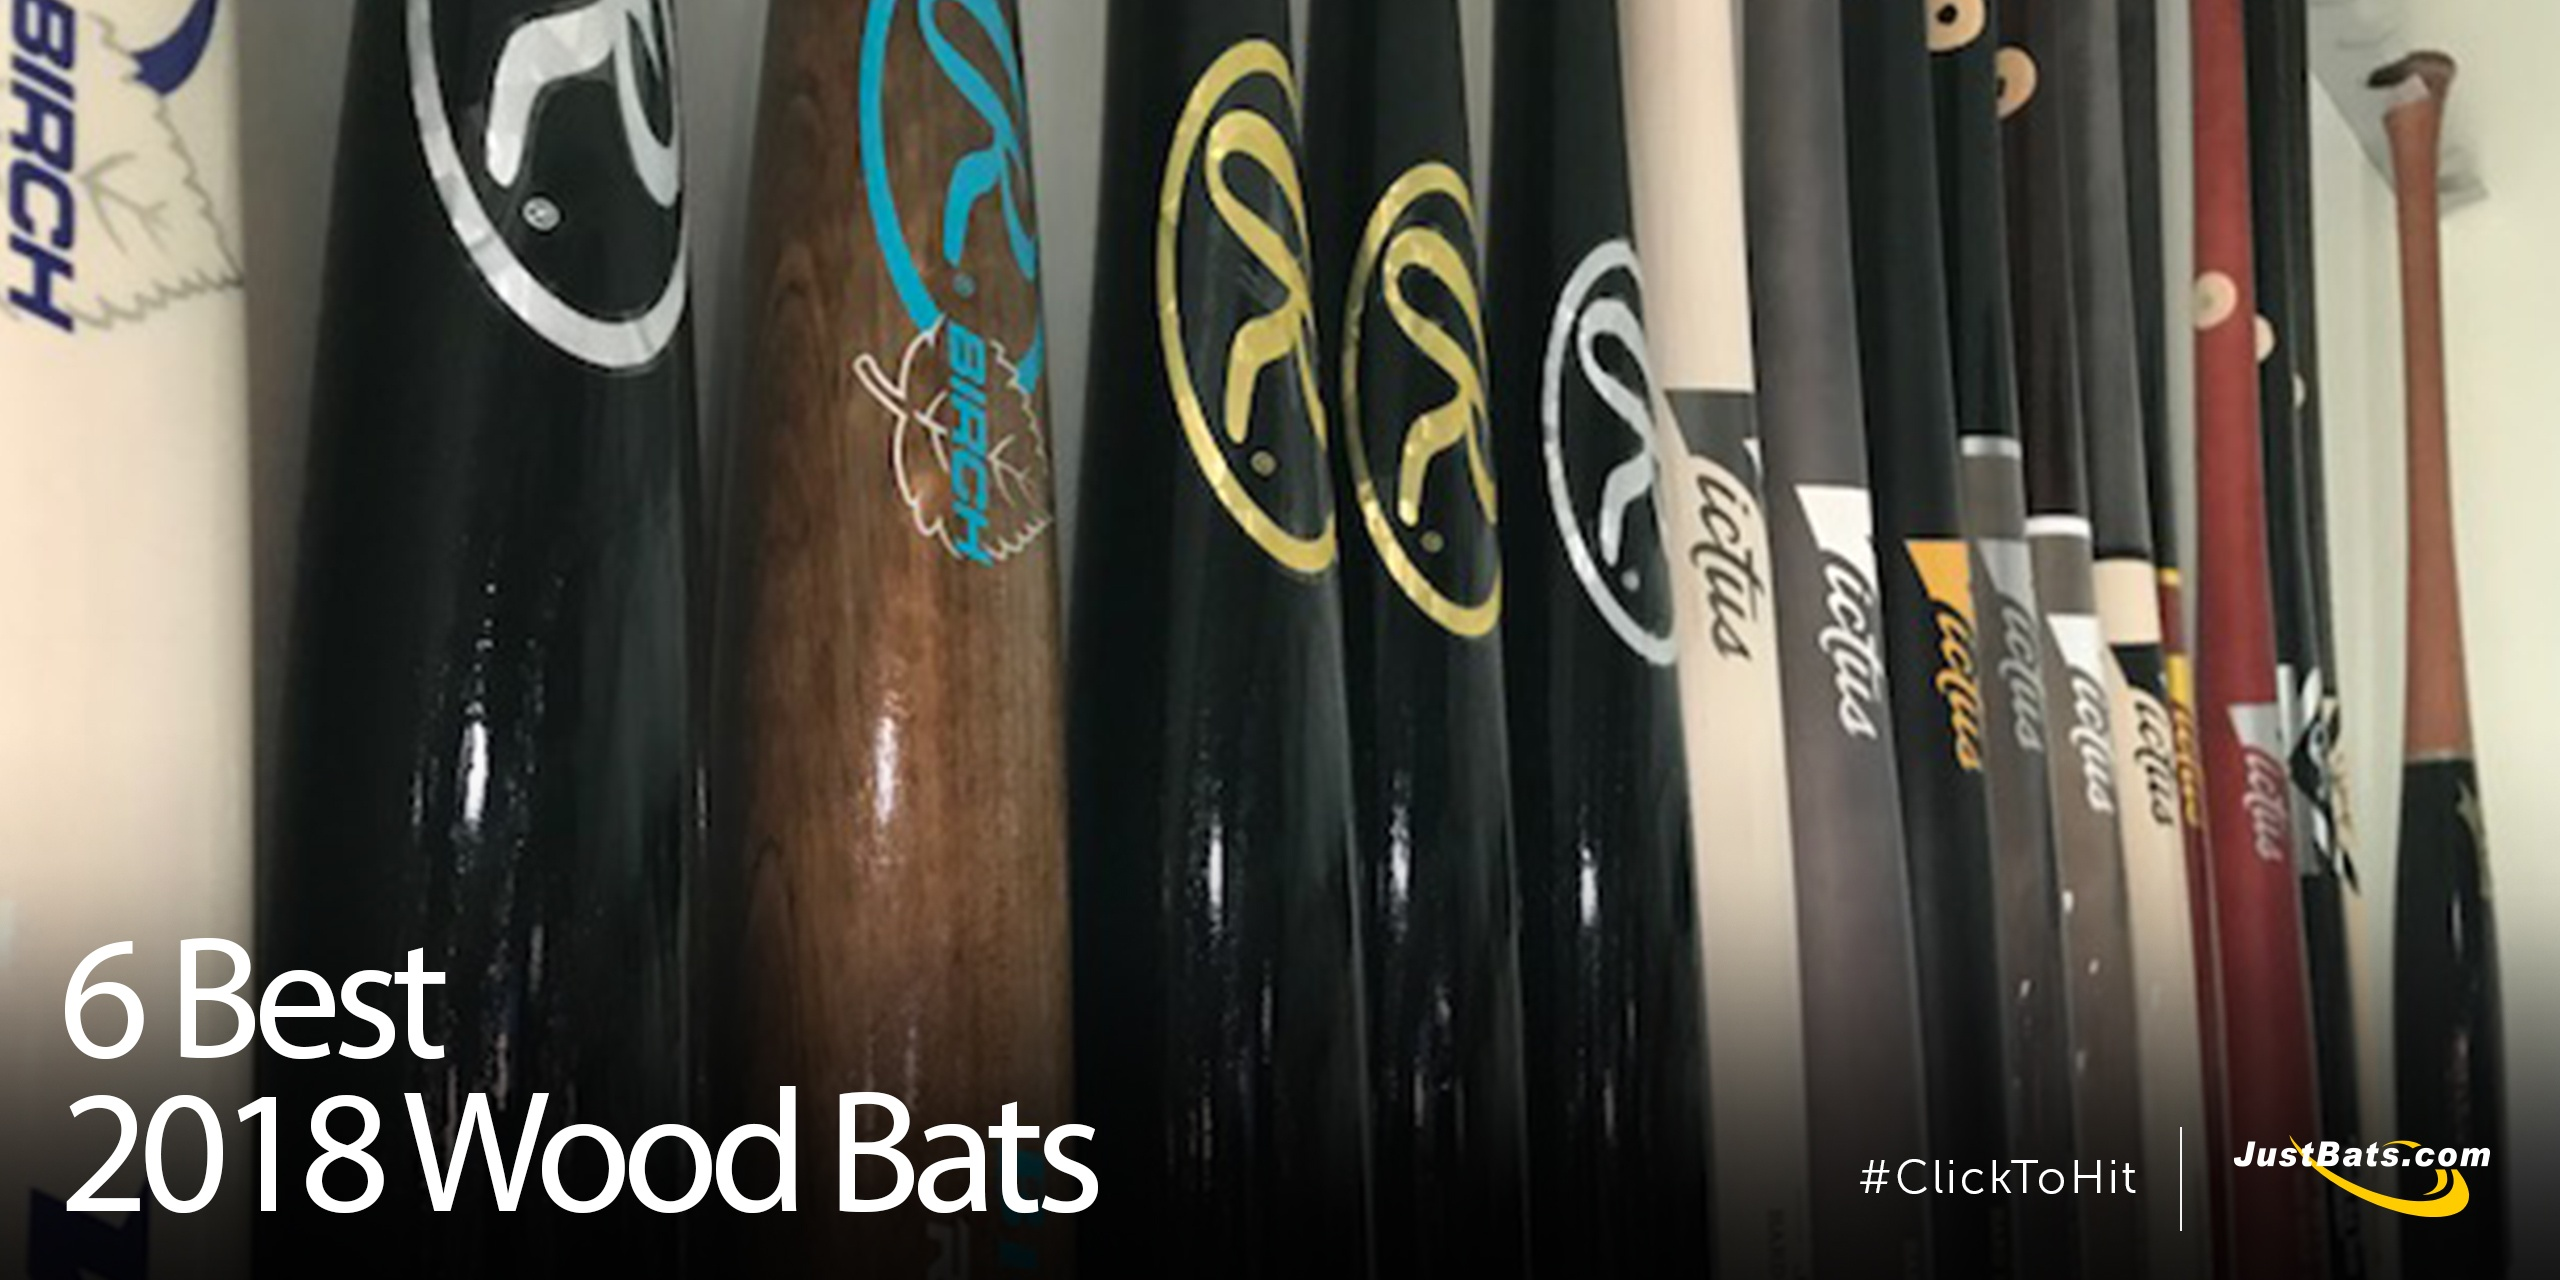 6 Best 2018 Wood Bats - Blog.jpg